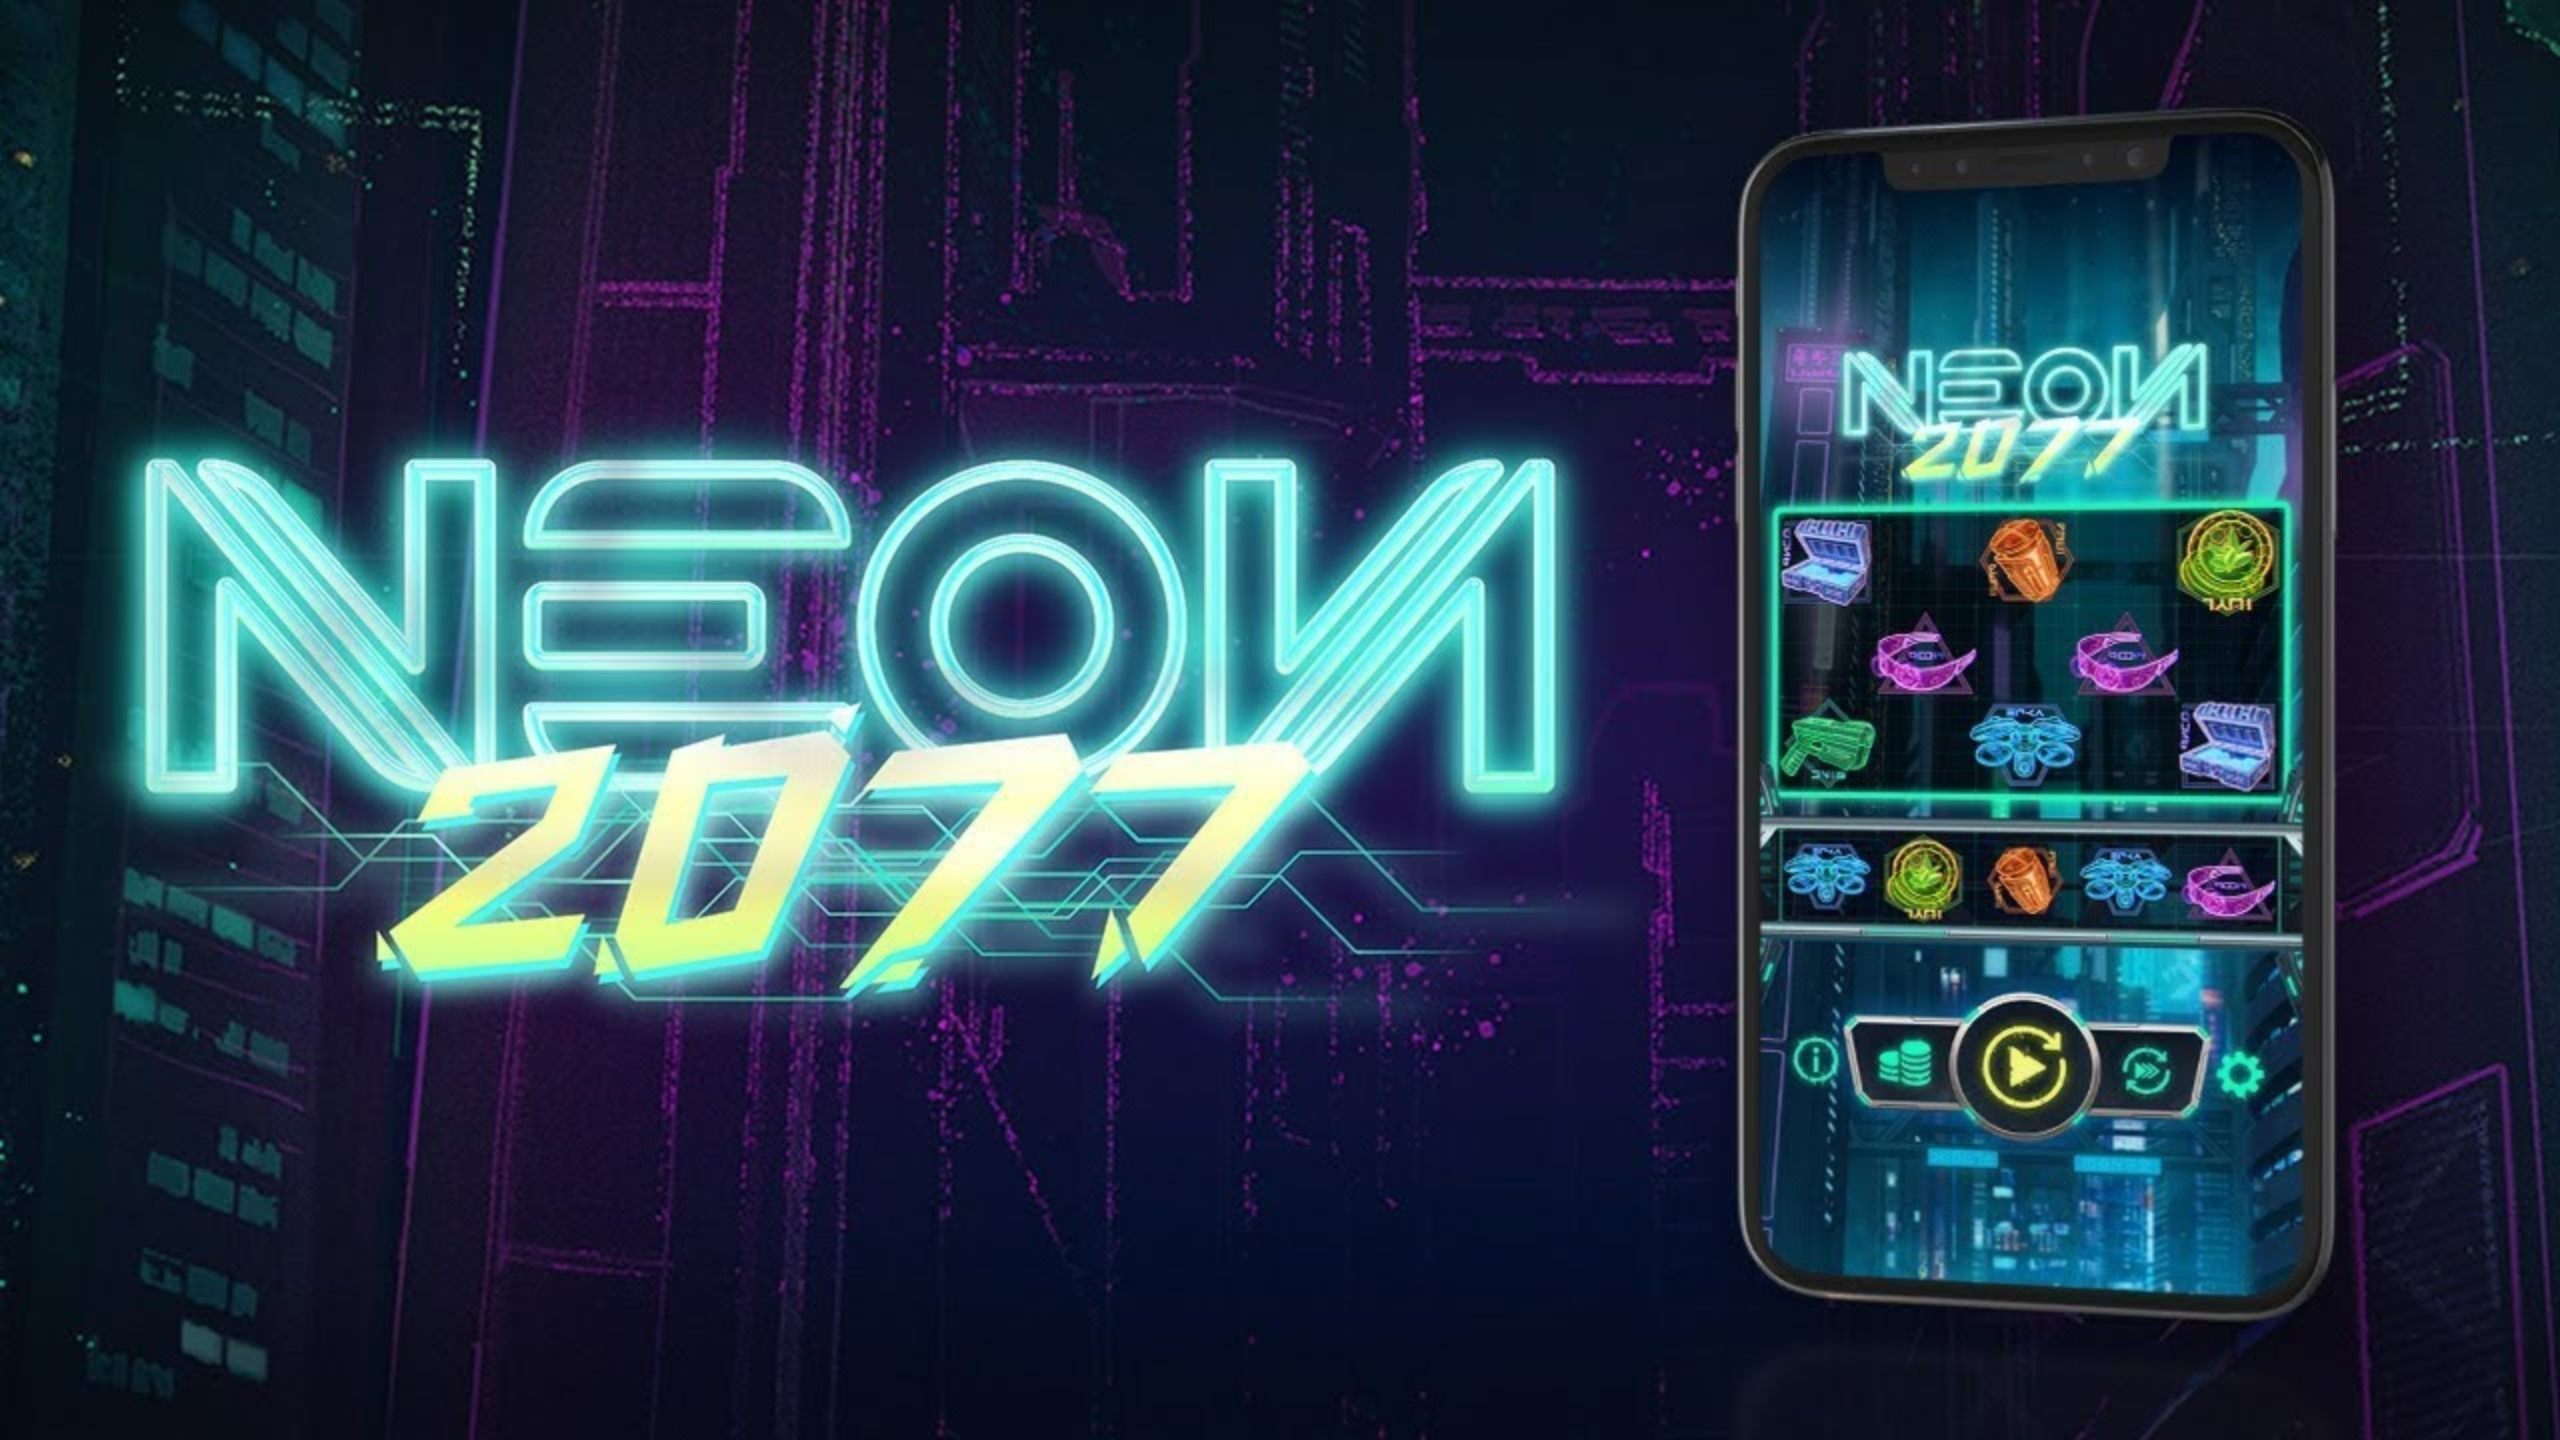 Se Neon2077 Online Slot Demo Game, OneTouch Games